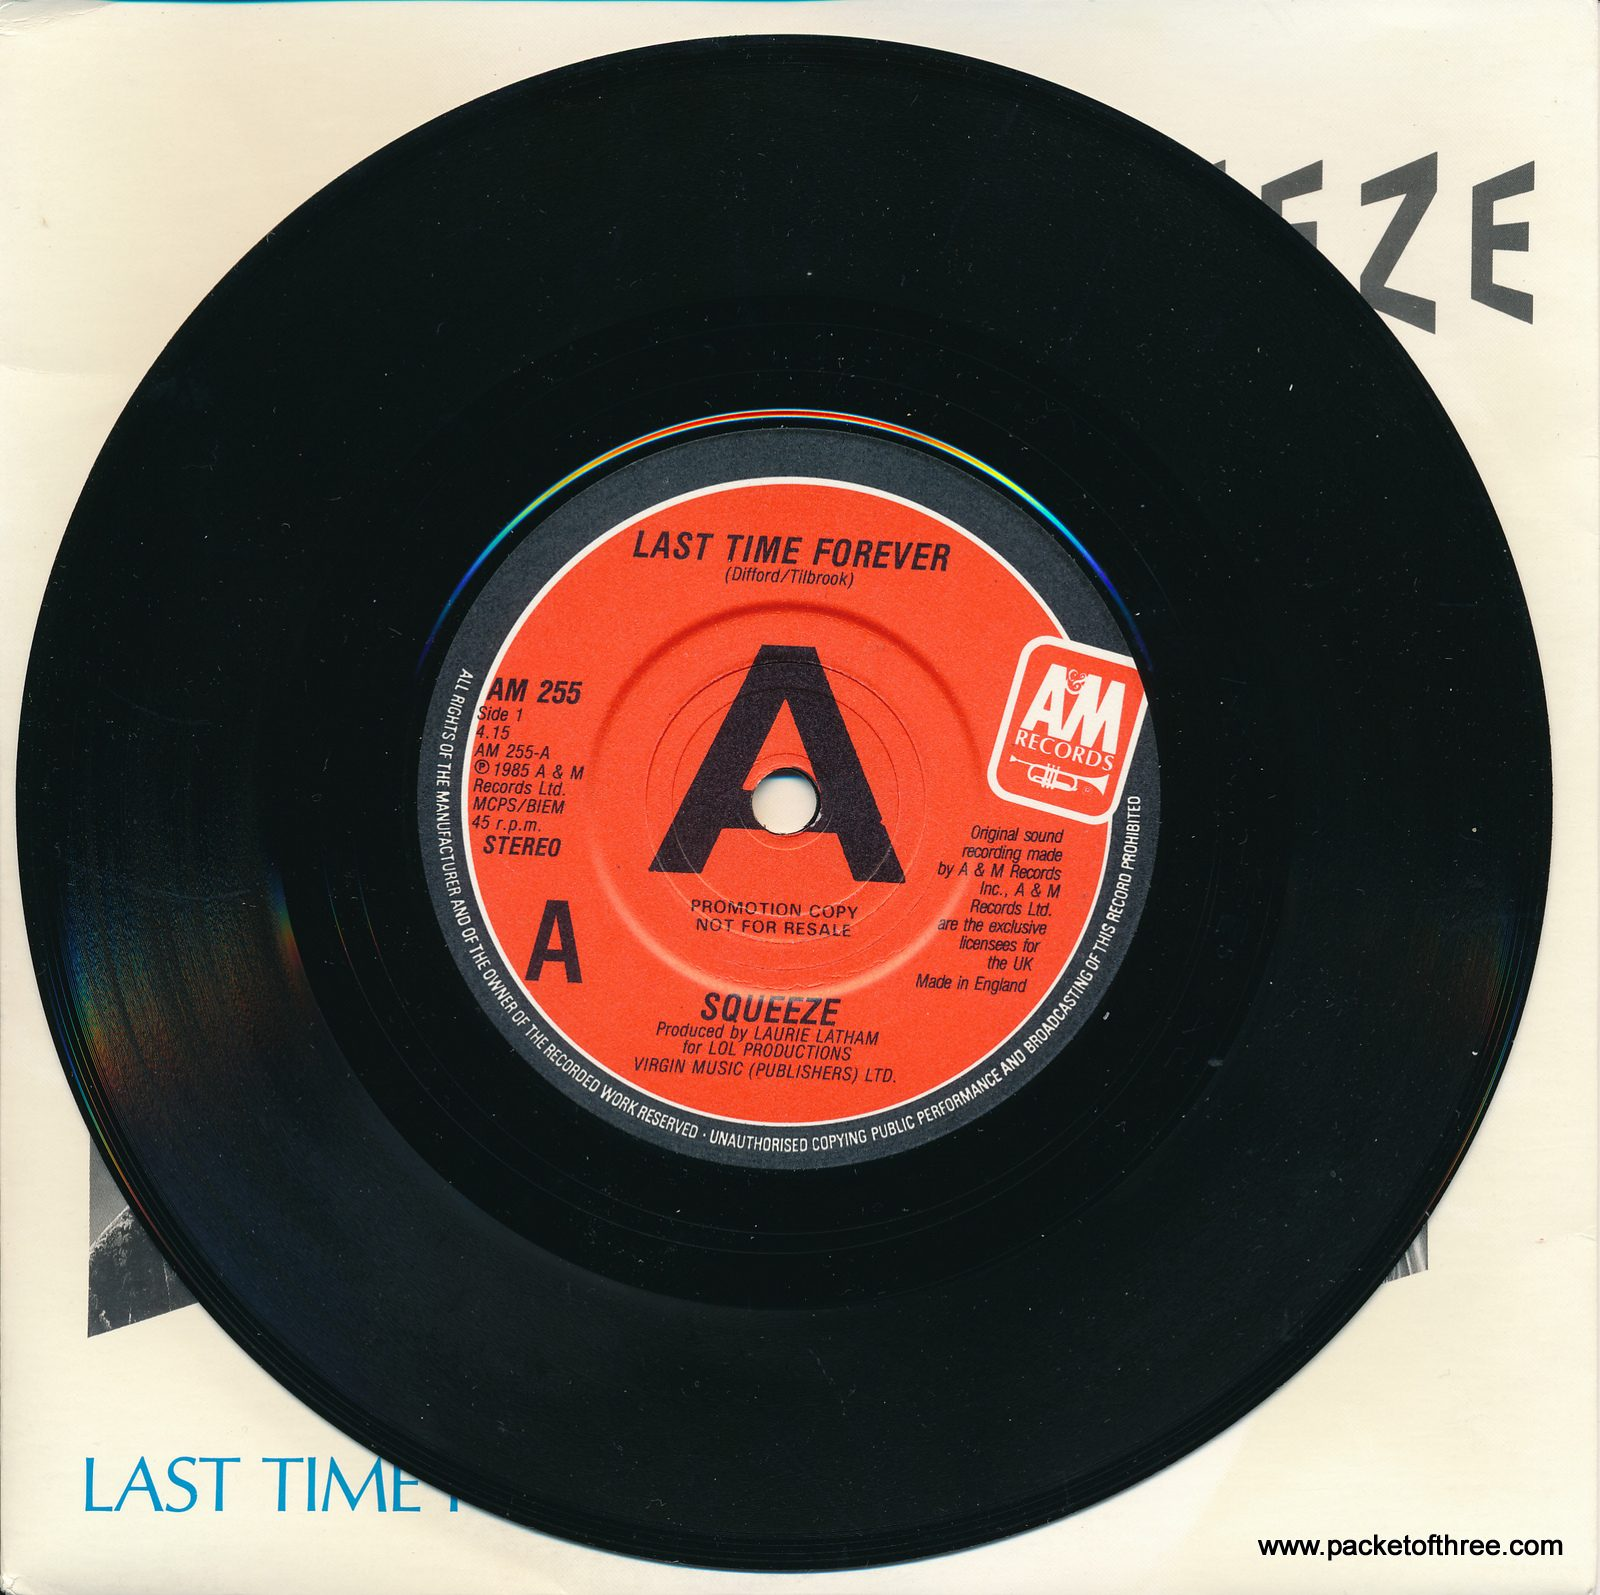 "Squeeze - Last Time Forever - UK - 7"" - promotional copy - picture sleeve"